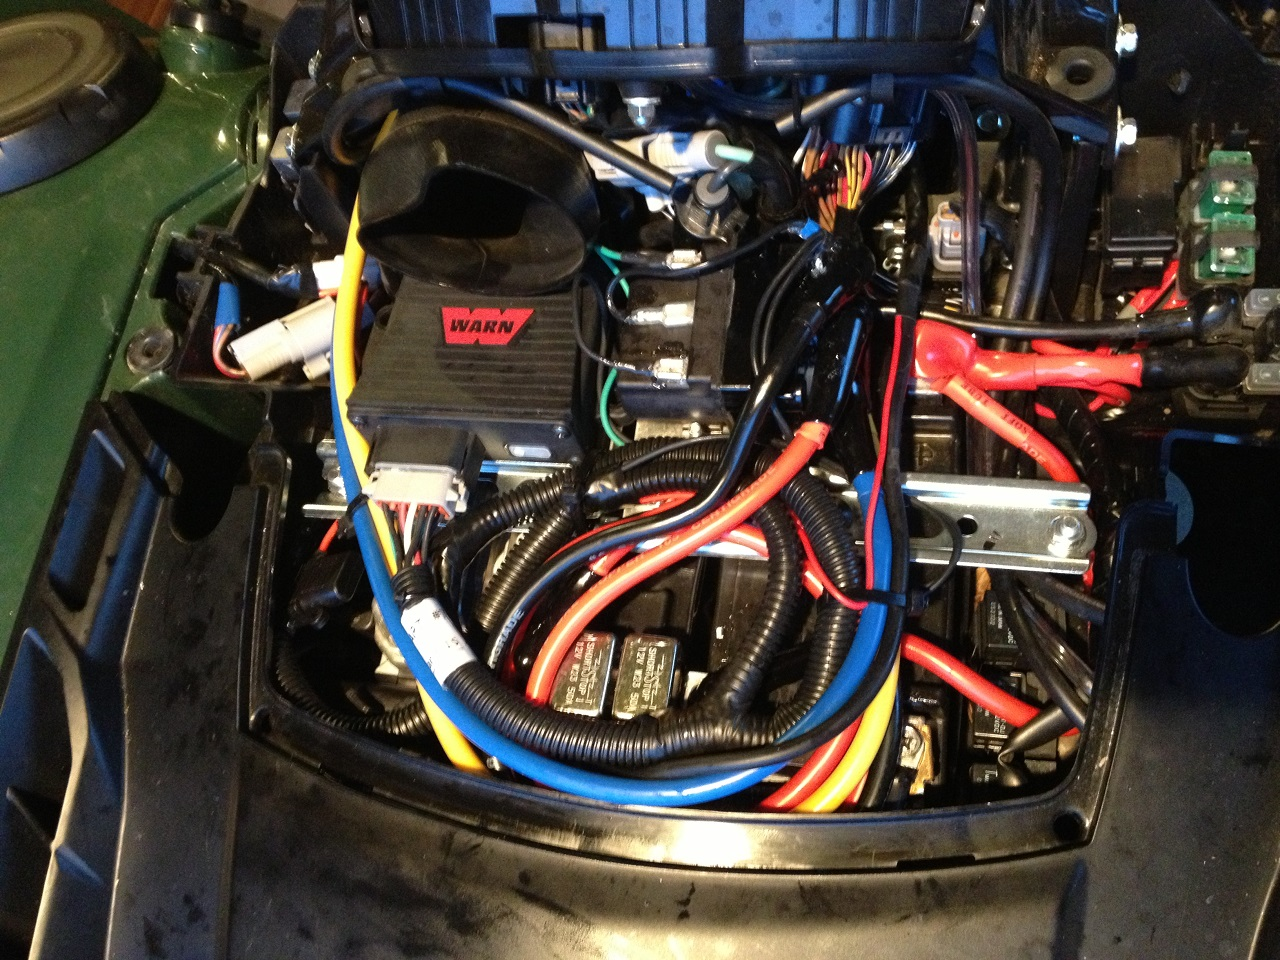 warn winch contactor wiring diagram 2009 jetta install solenoid toyskids co under the hood on 2014 grizzly 700